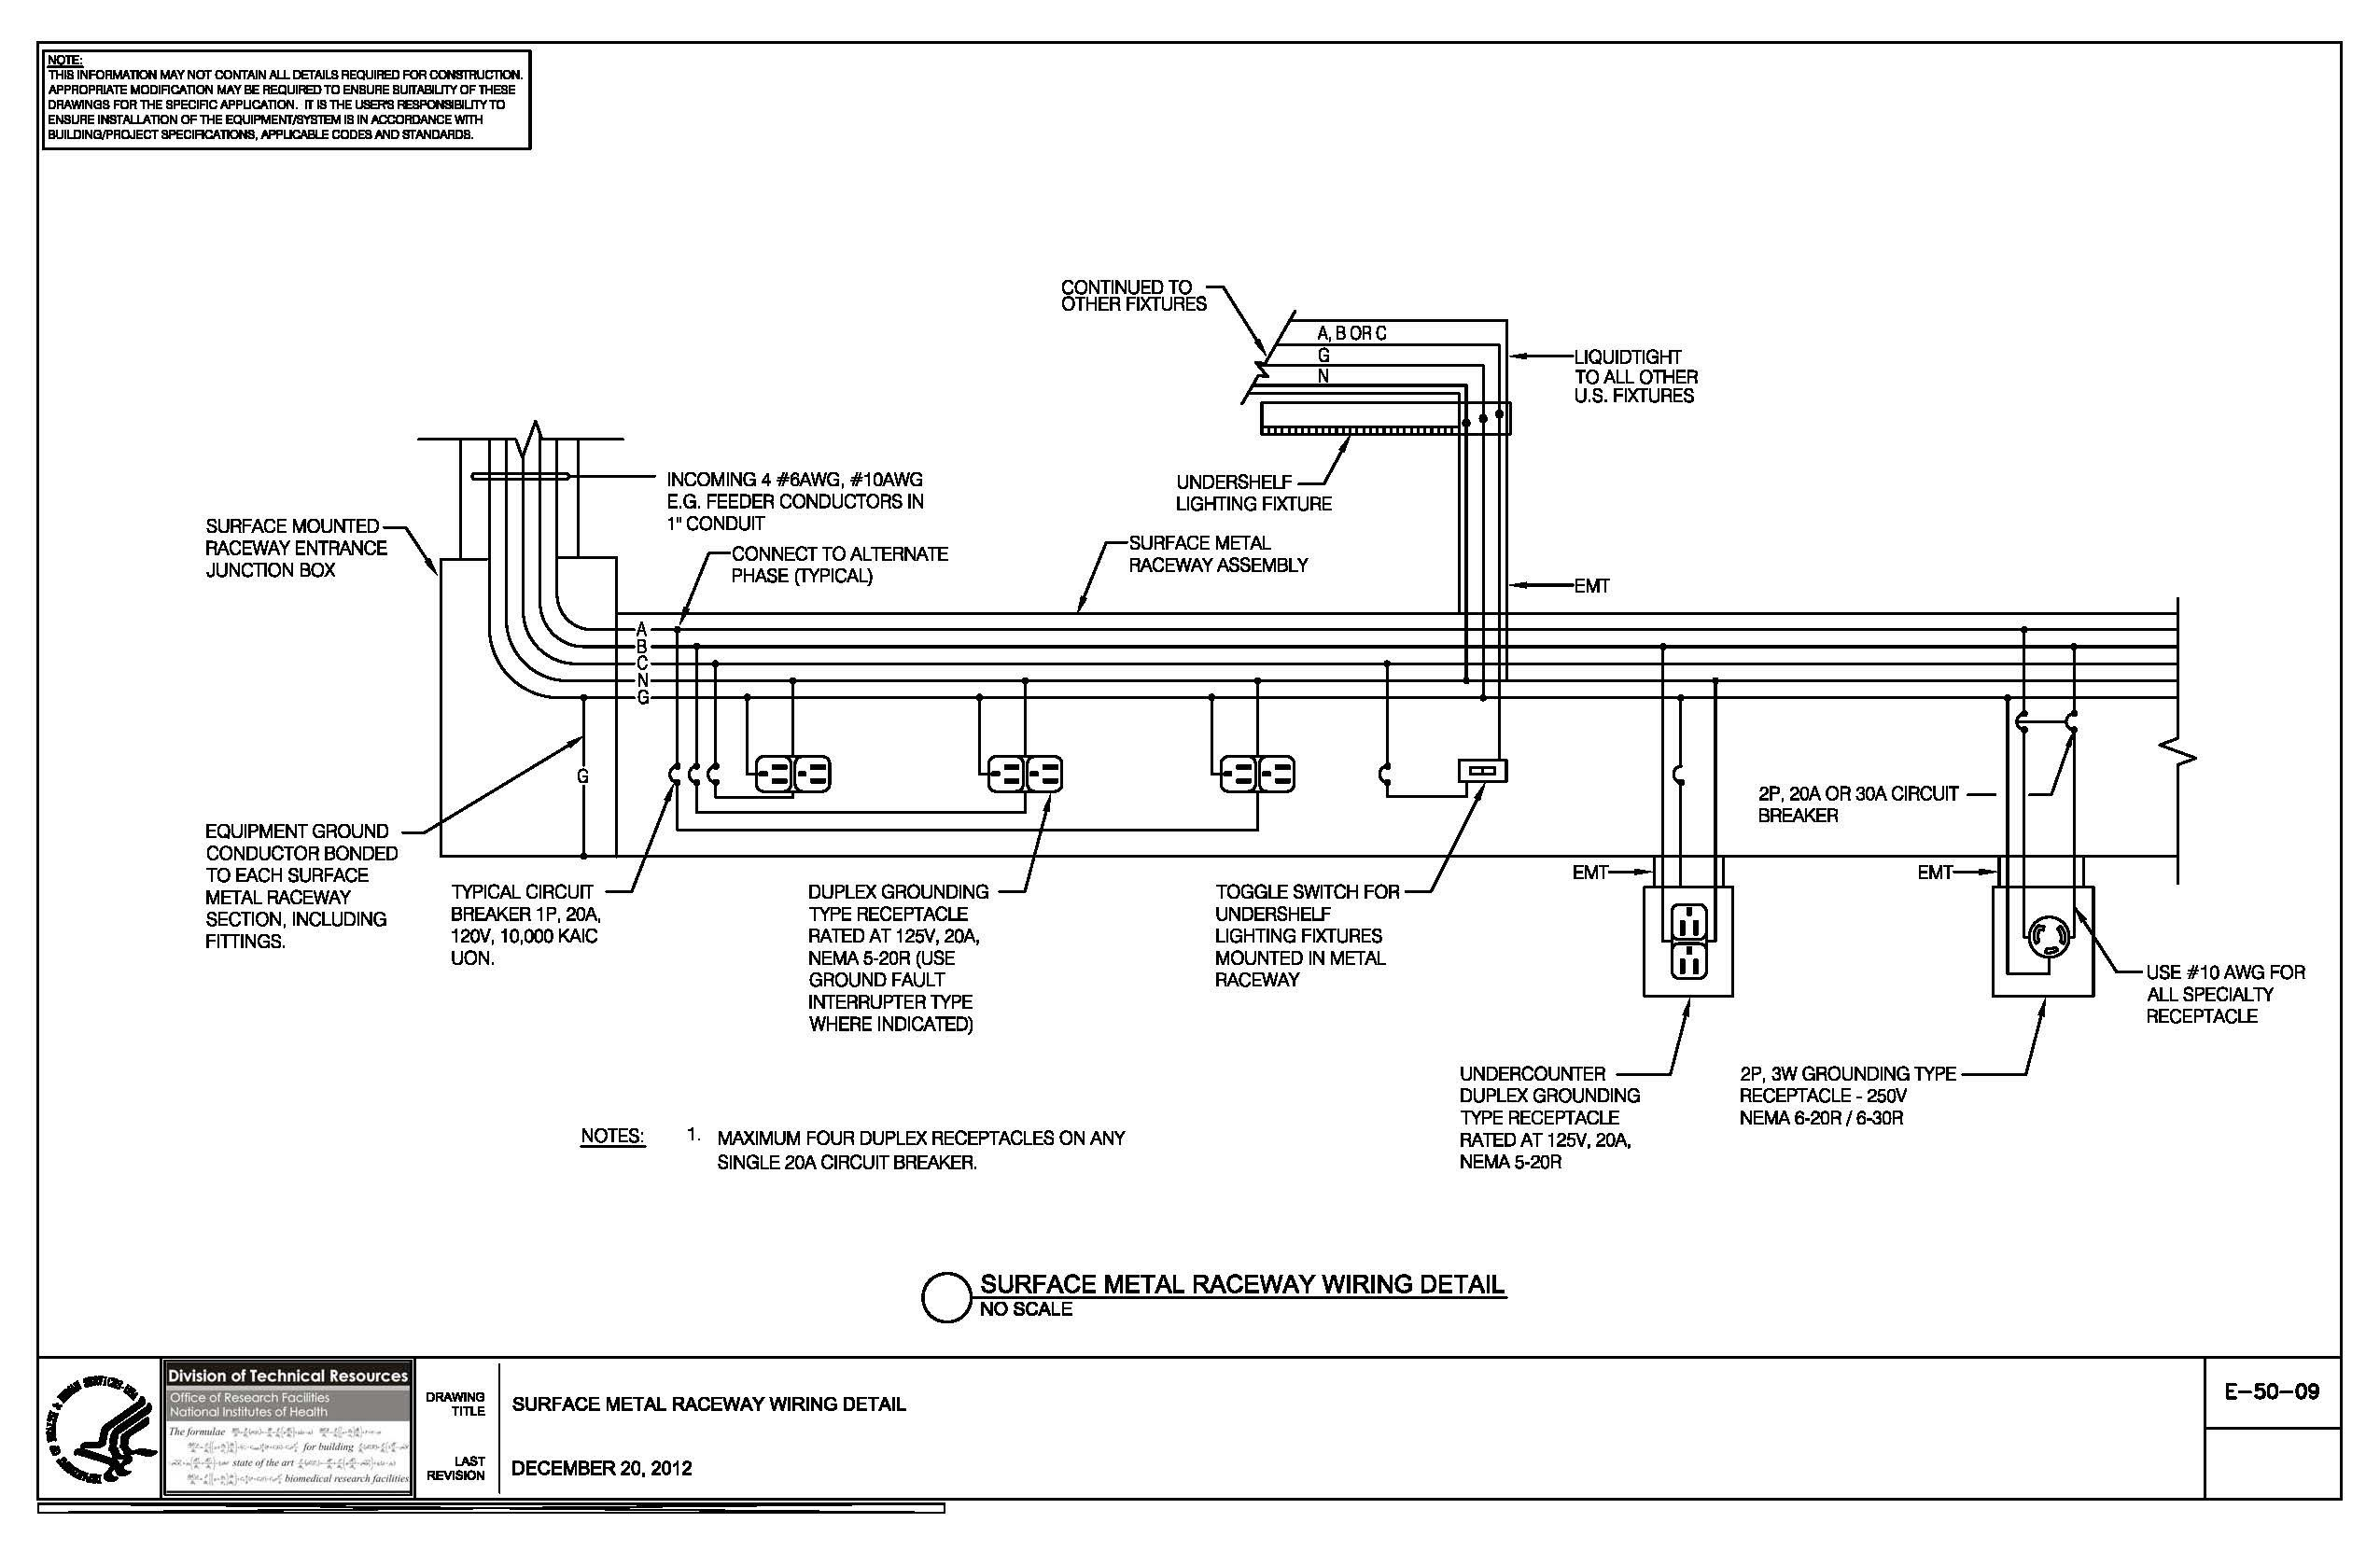 How to Wire A Garage Diagram How to Wire A Garage Diagram Awesome Nih Standard Cad Details Of How to Wire A Garage Diagram